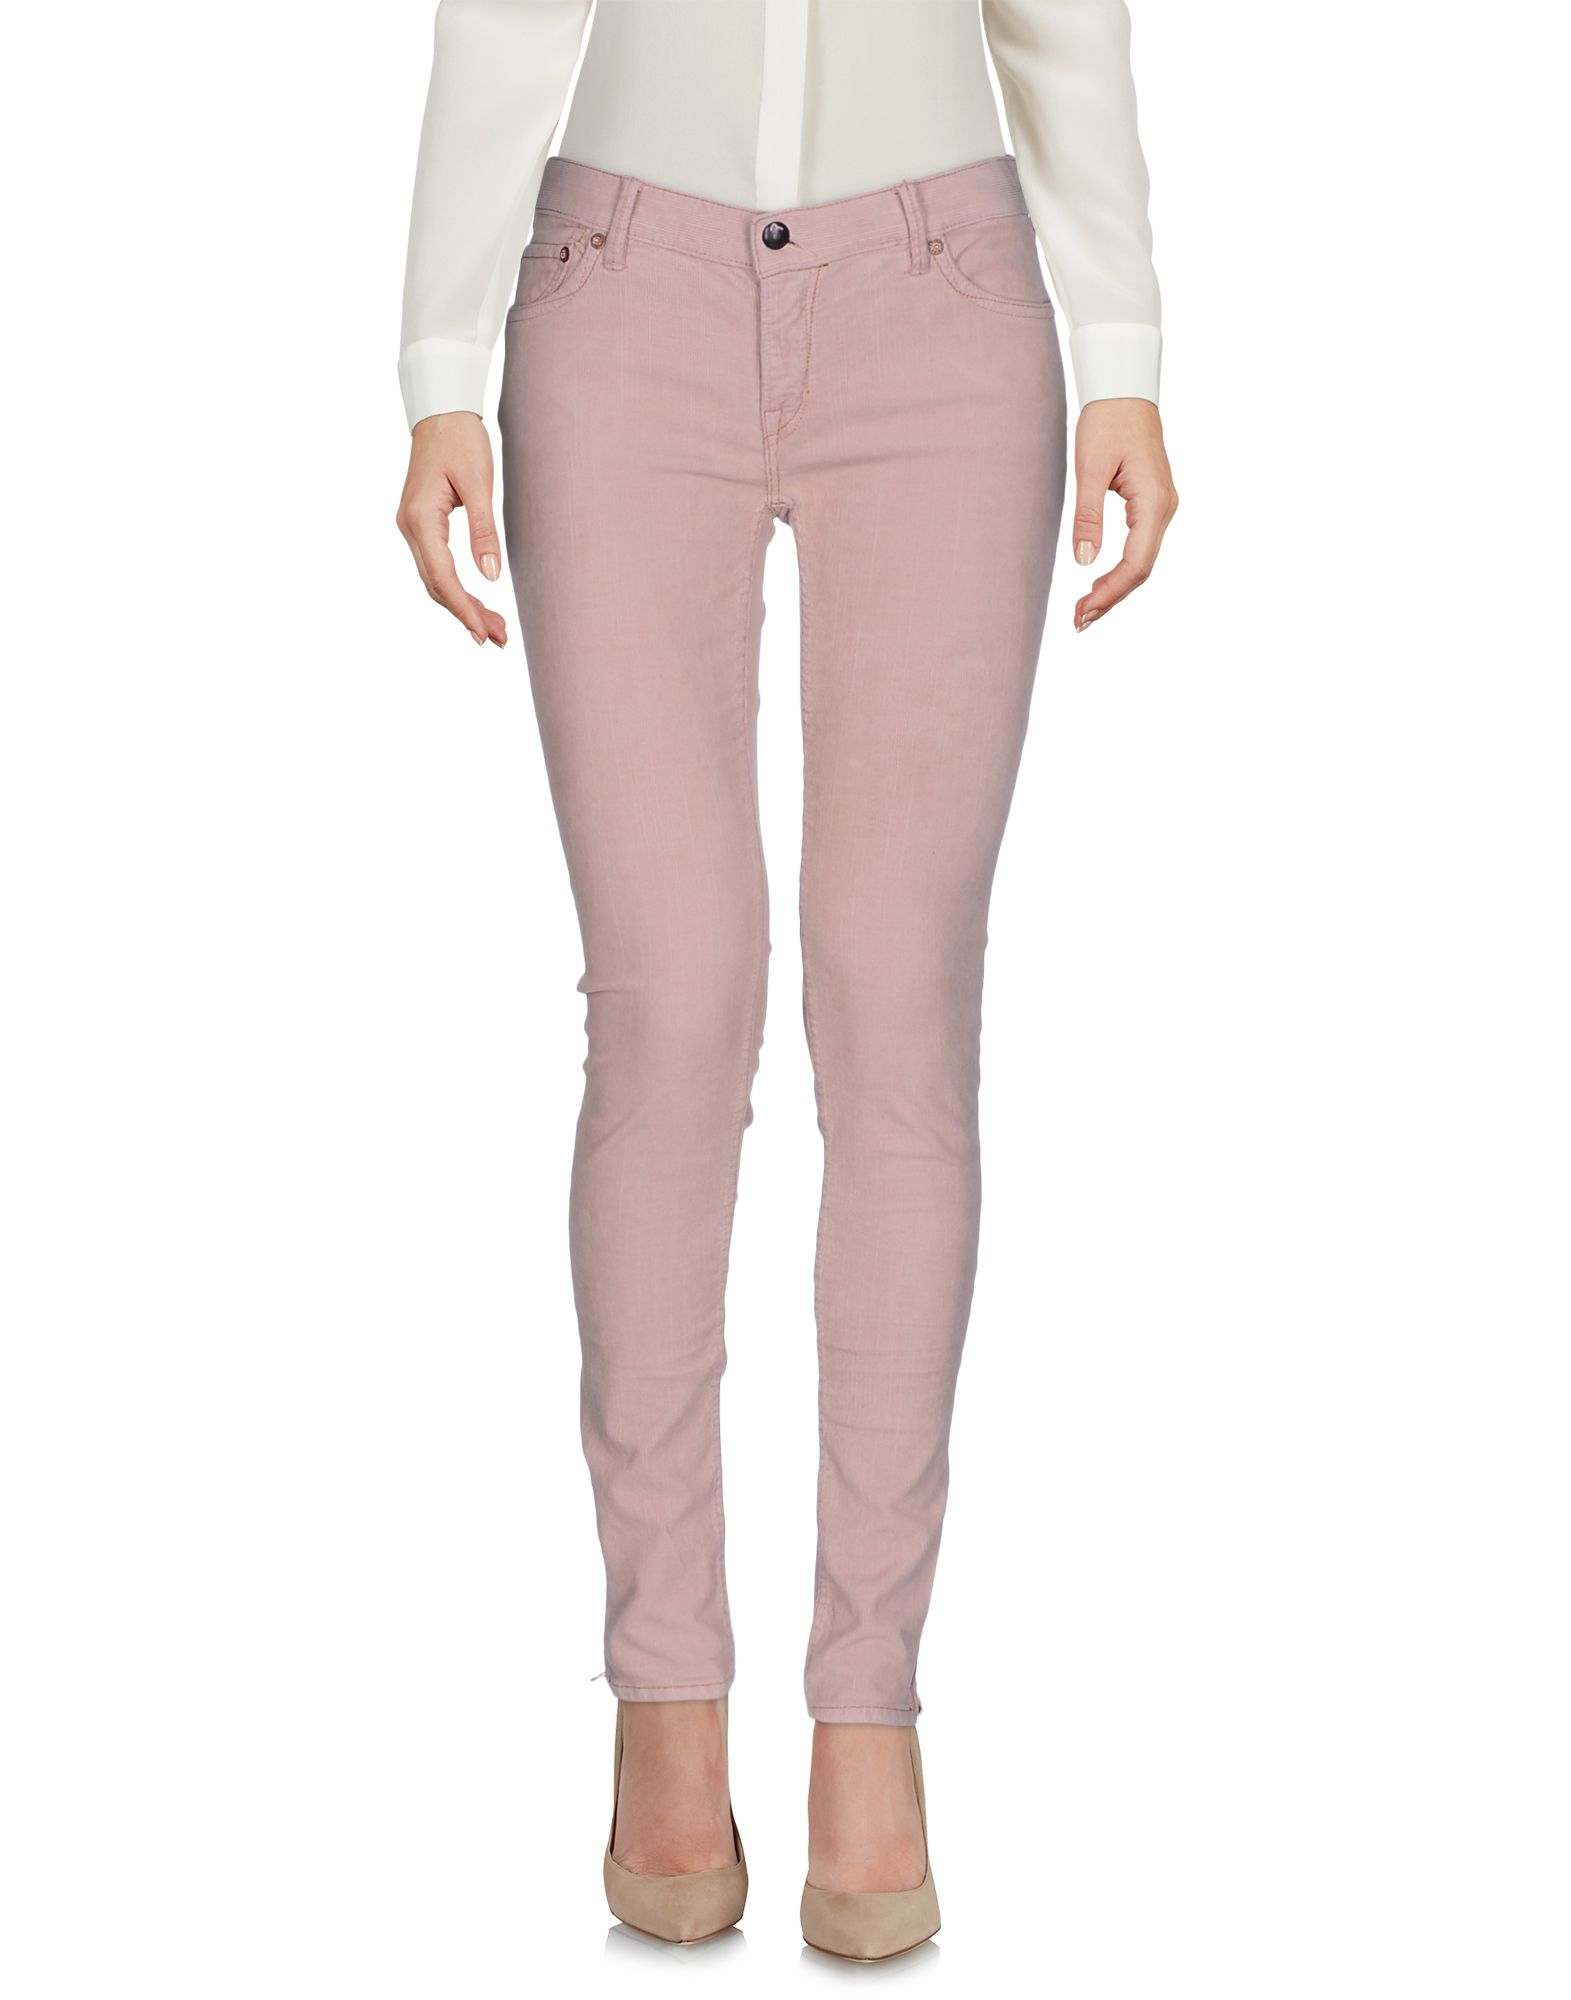 EVISU Casual Pants in Light Pink